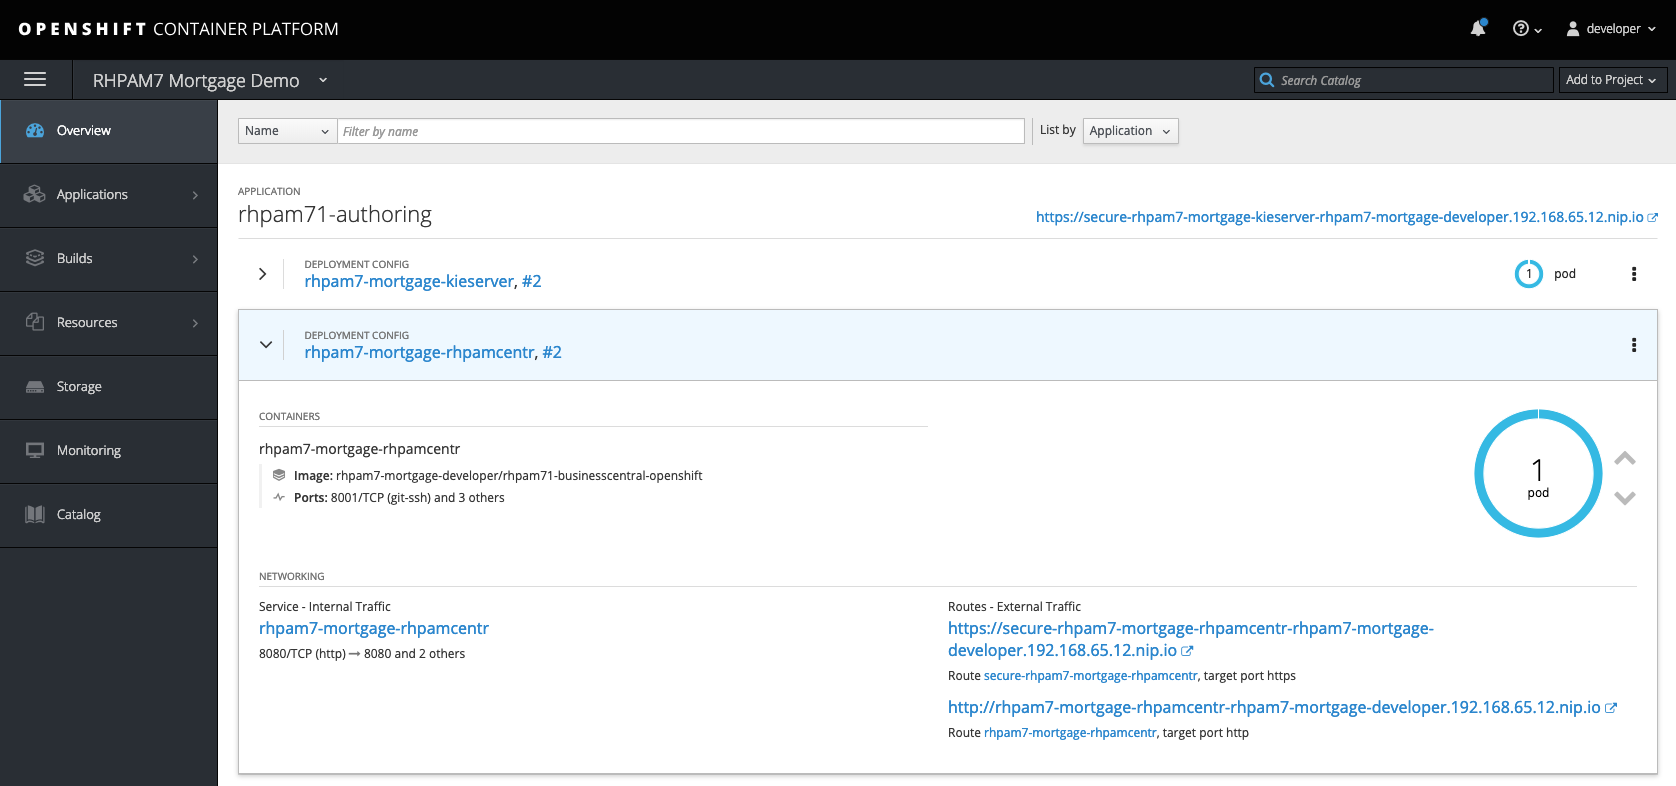 OpenShift Namespace Overview